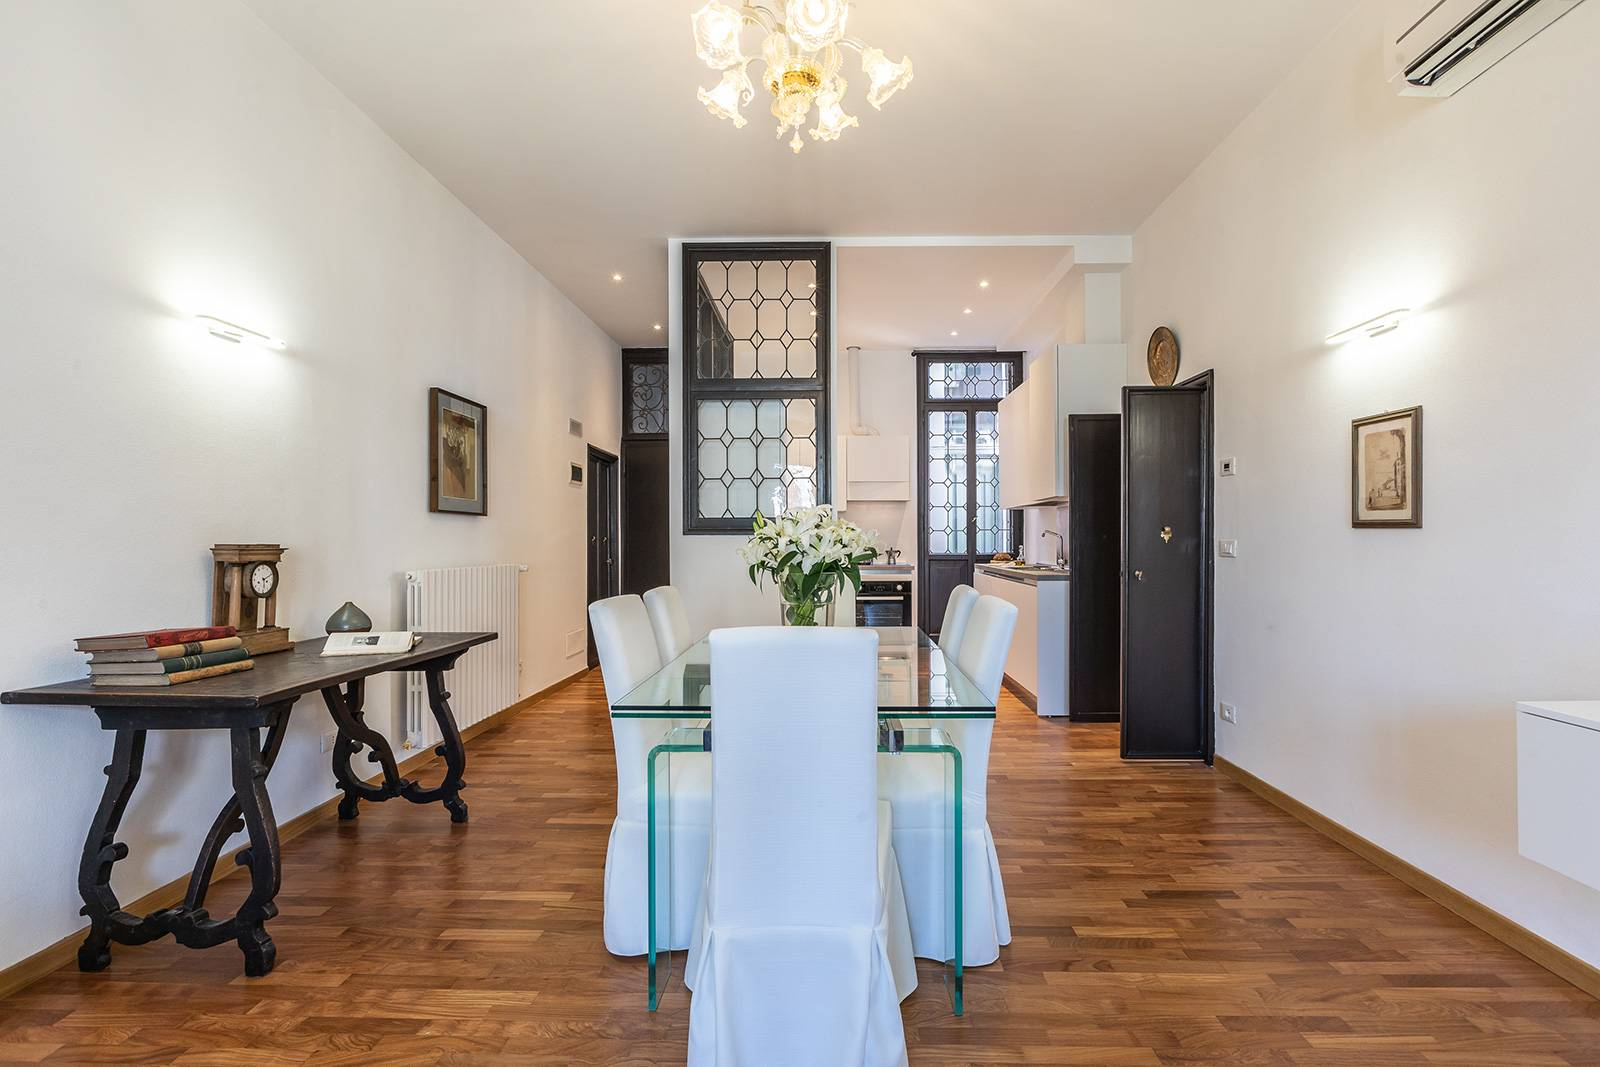 Madama Butterfly apartment blends antiques with contemporary comfort